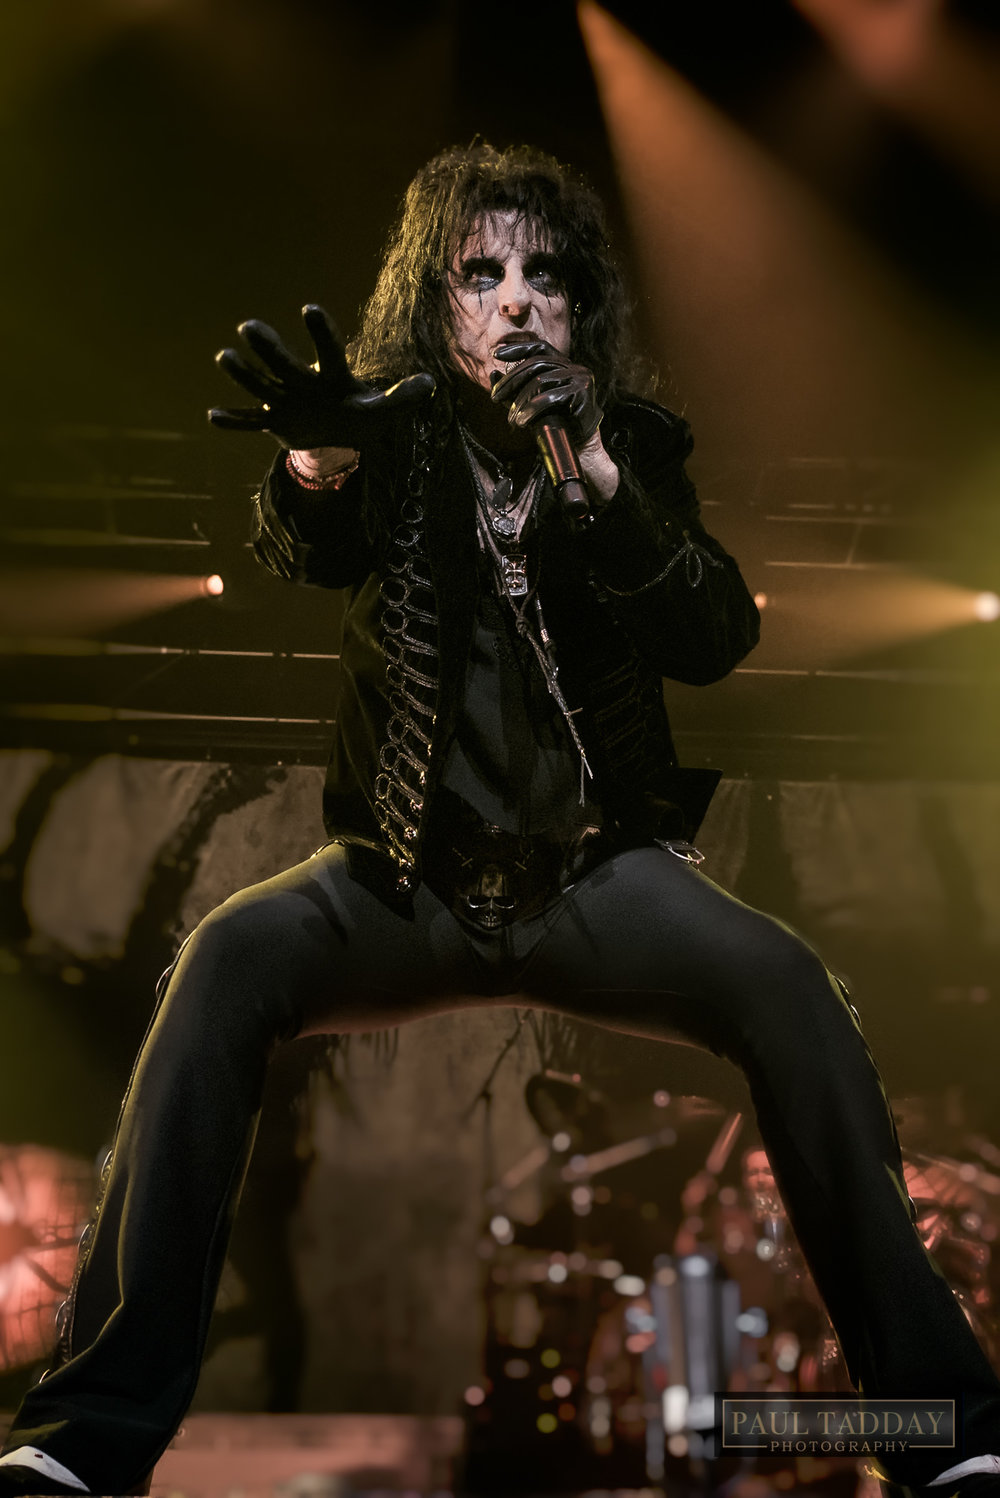 alice cooper - melbourne - paul tadday photography - 201017 - 64.jpg